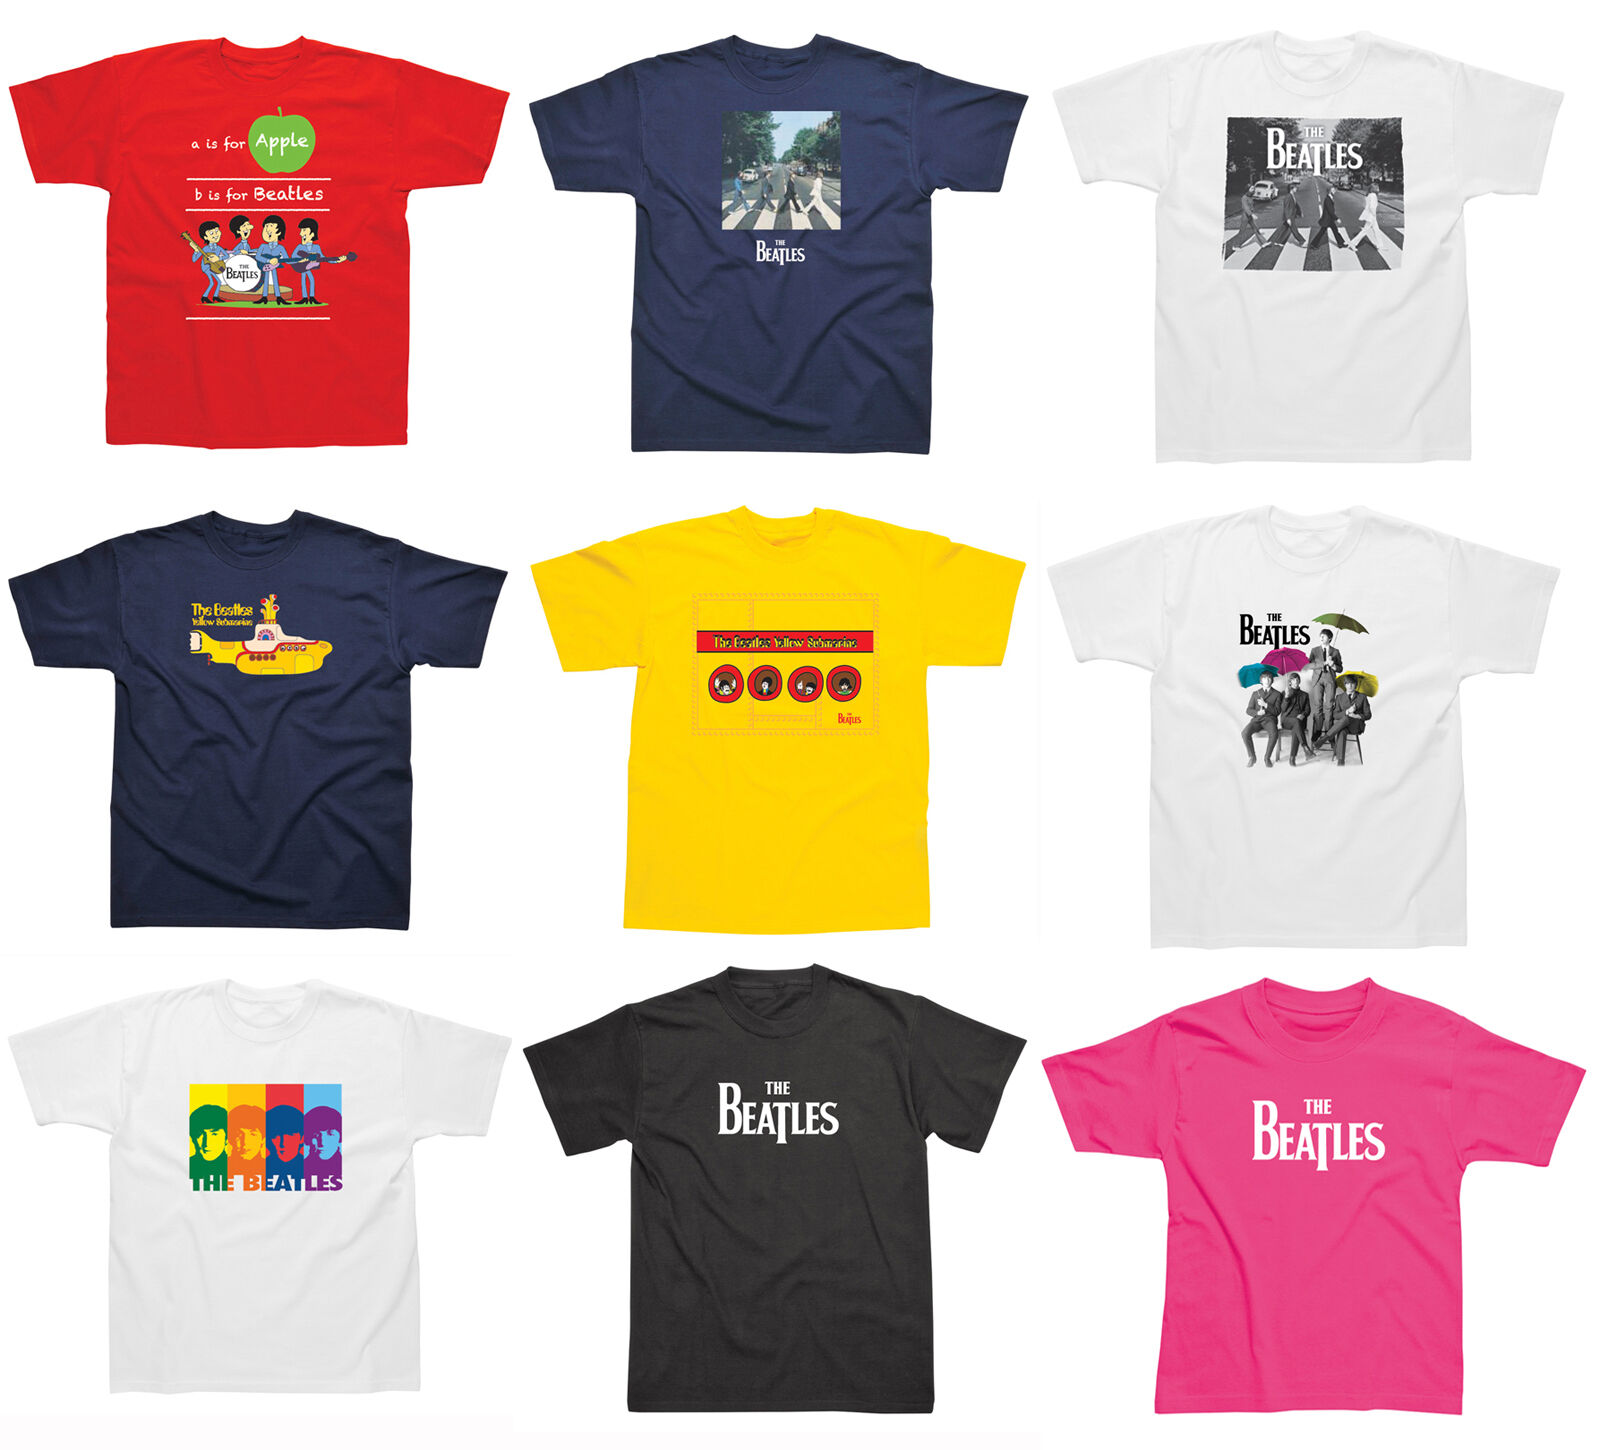 e0aed323 Details about Official Beatles Childrens T-Shirt Music Clothing For Boys  Girls All Sizes